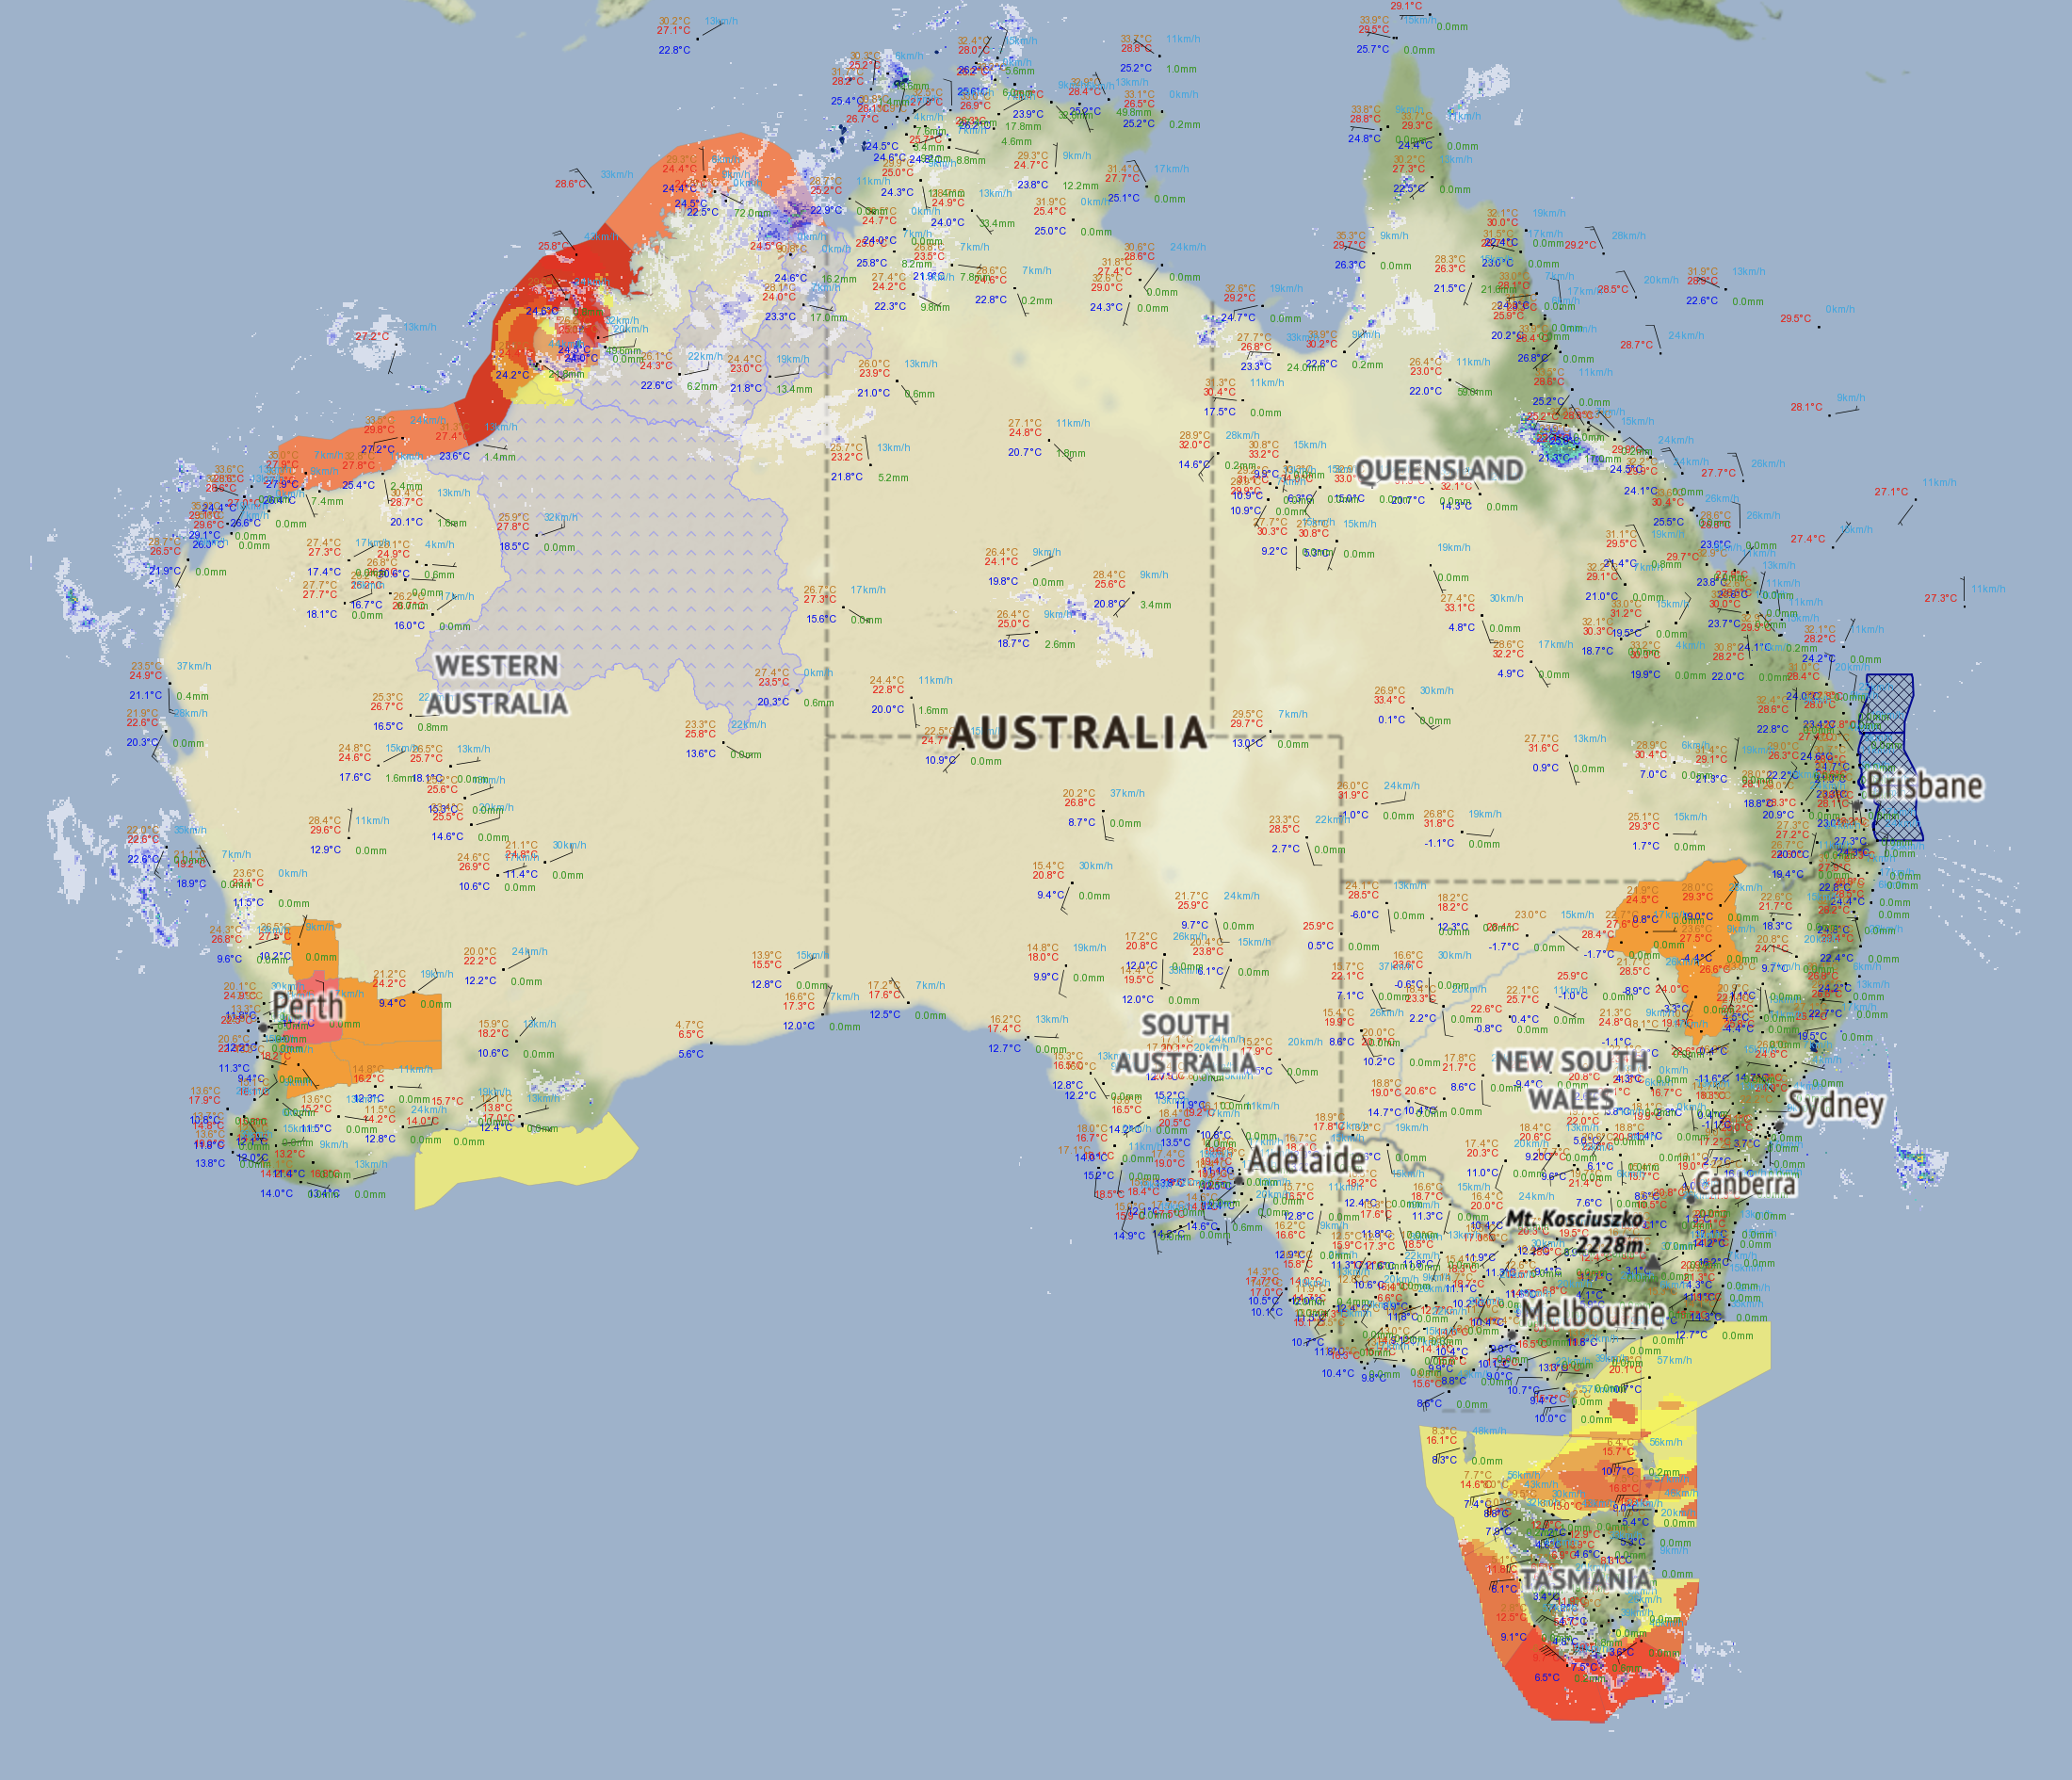 WEATHER WARNINGS - Australian warnings from the bureau of meteorologyQUICKLY SEE IF IT AFFECTS YOU